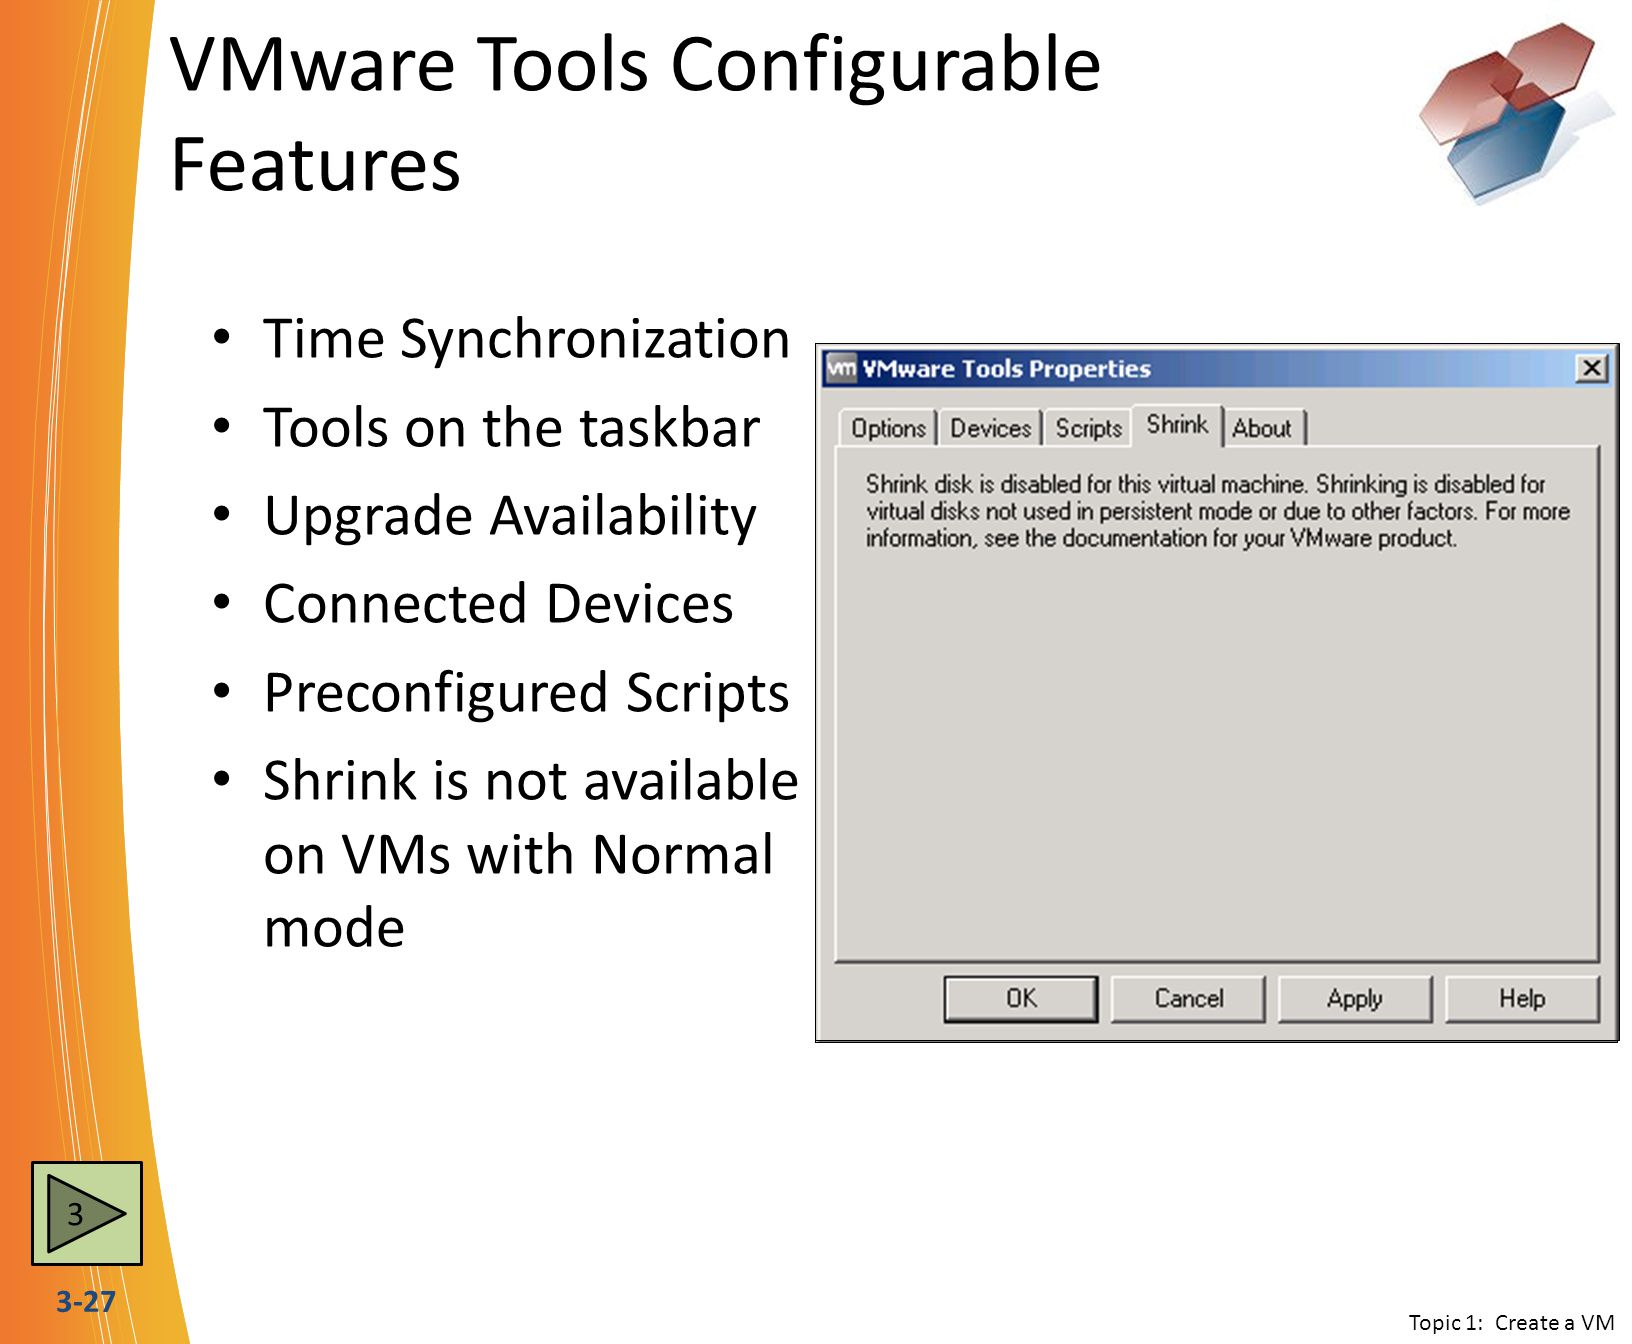 3-27 VMware Tools Configurable Features Time Synchronization Tools on the taskbar Upgrade Availability Connected Devices Preconfigured Scripts Shrink